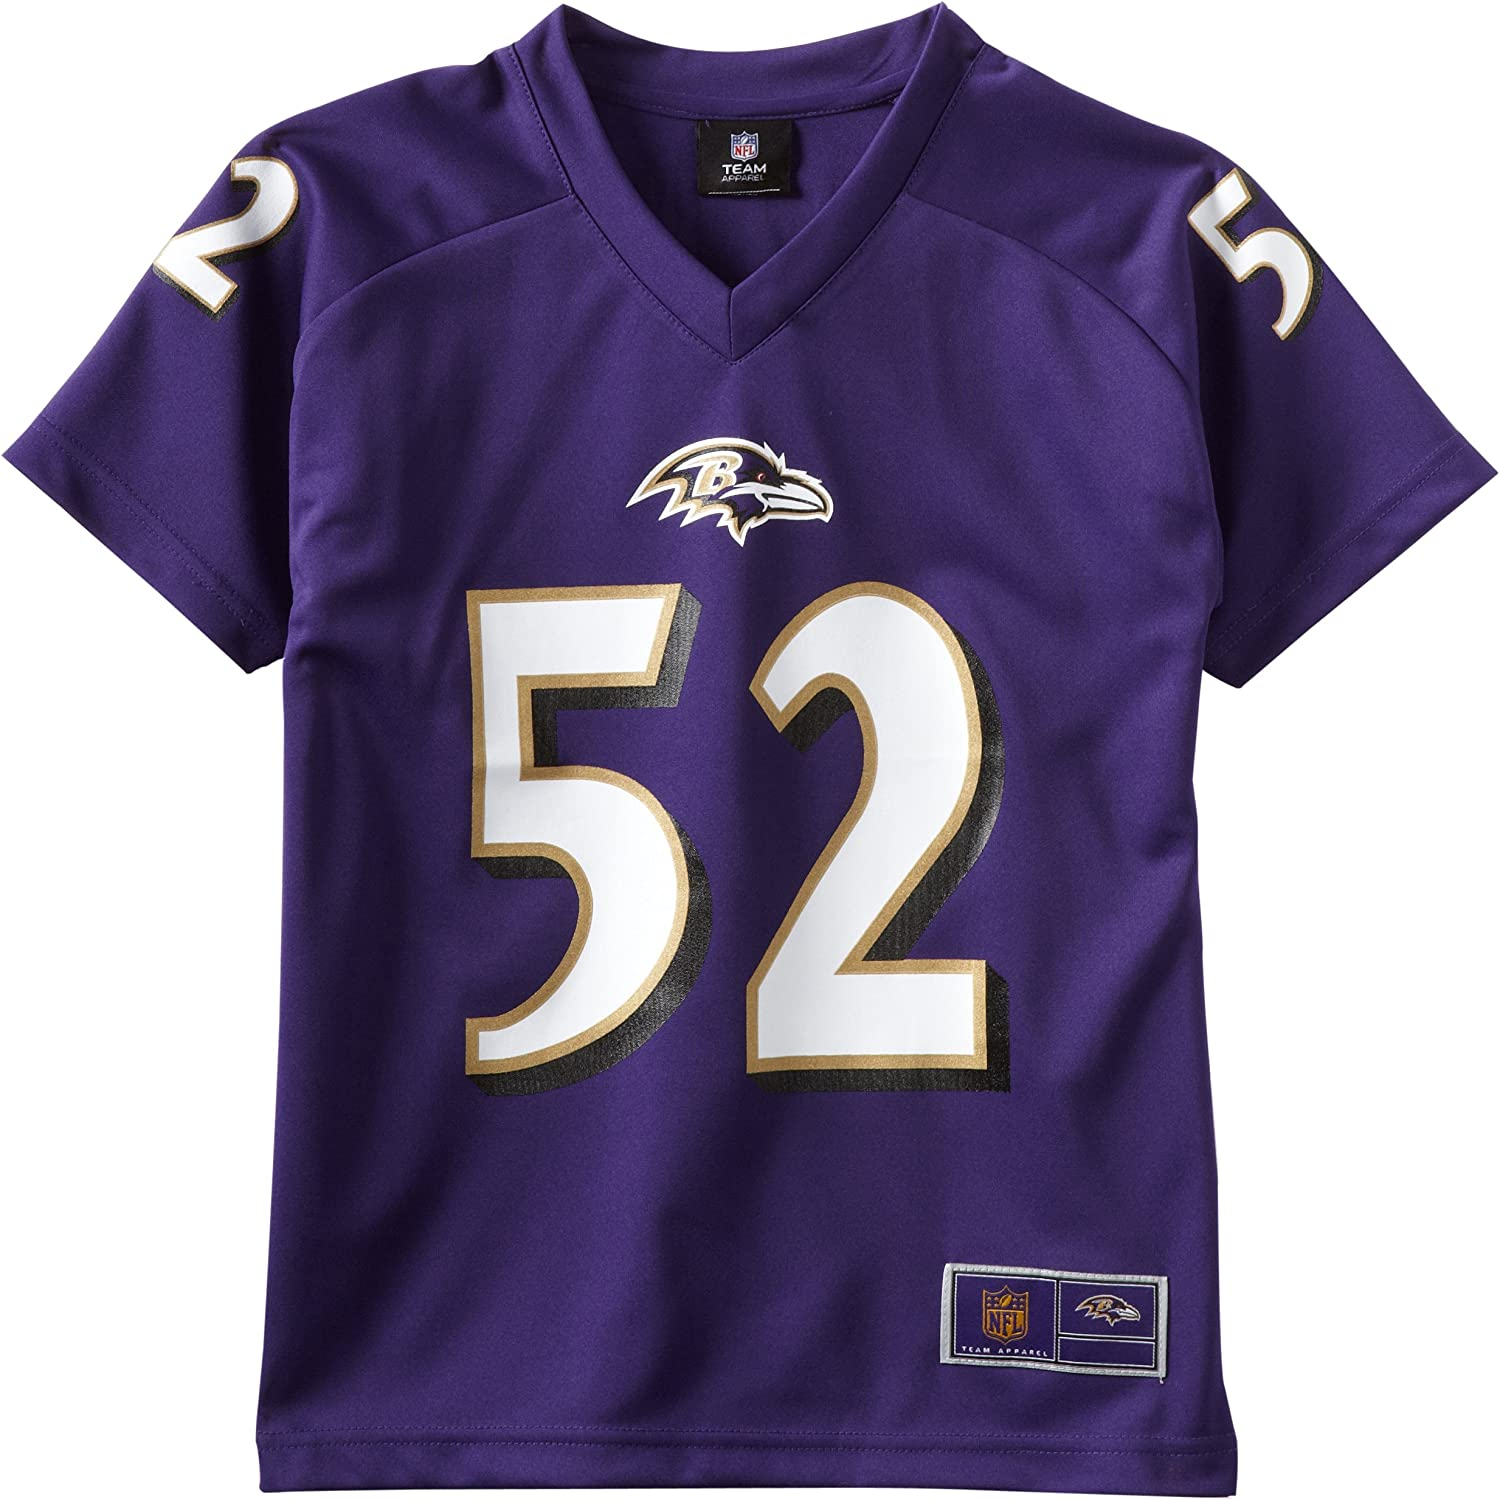 Amazon.com : NFL Baltimore Ravens Ray Lewis 8-20 Youth Player ...